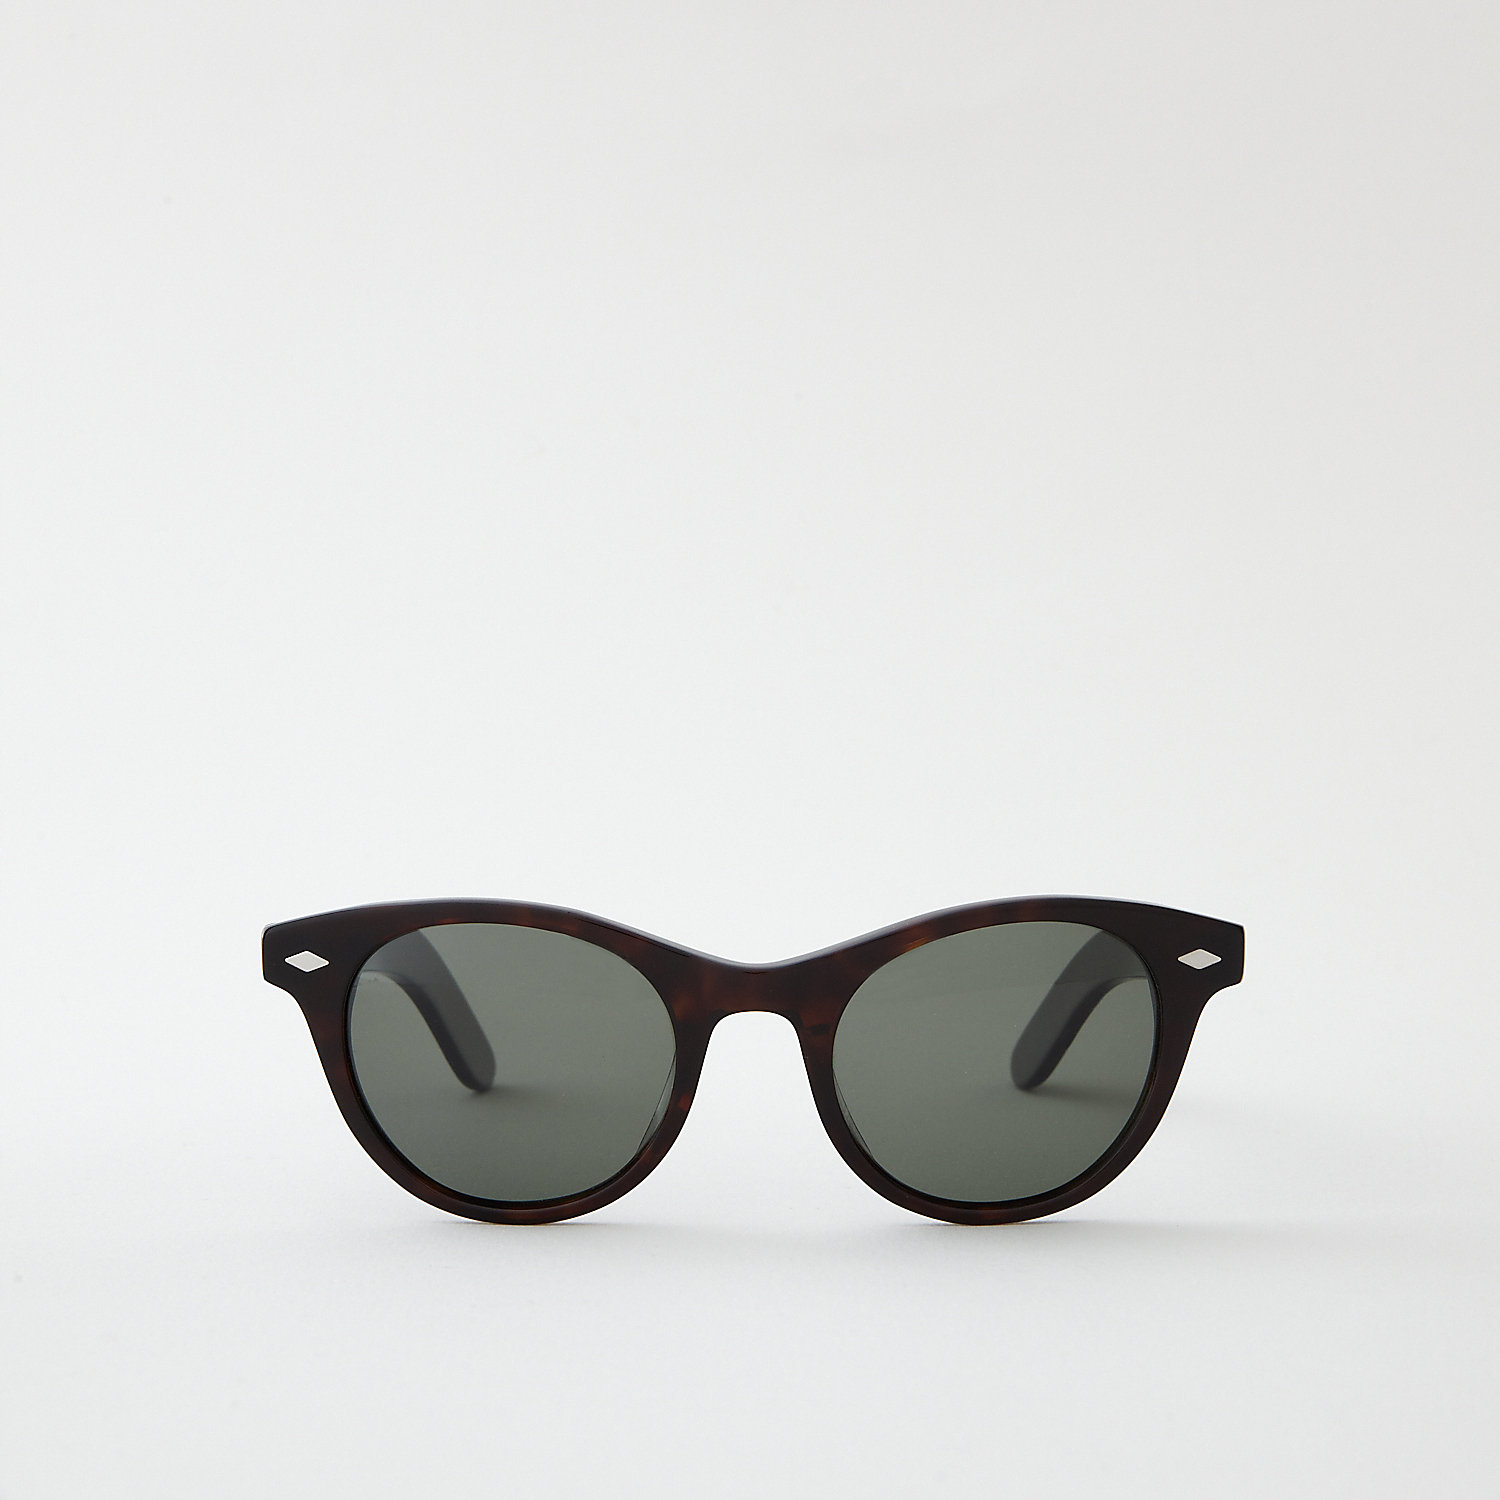 THAYER SUNGLASSES - DARK TORTOISE